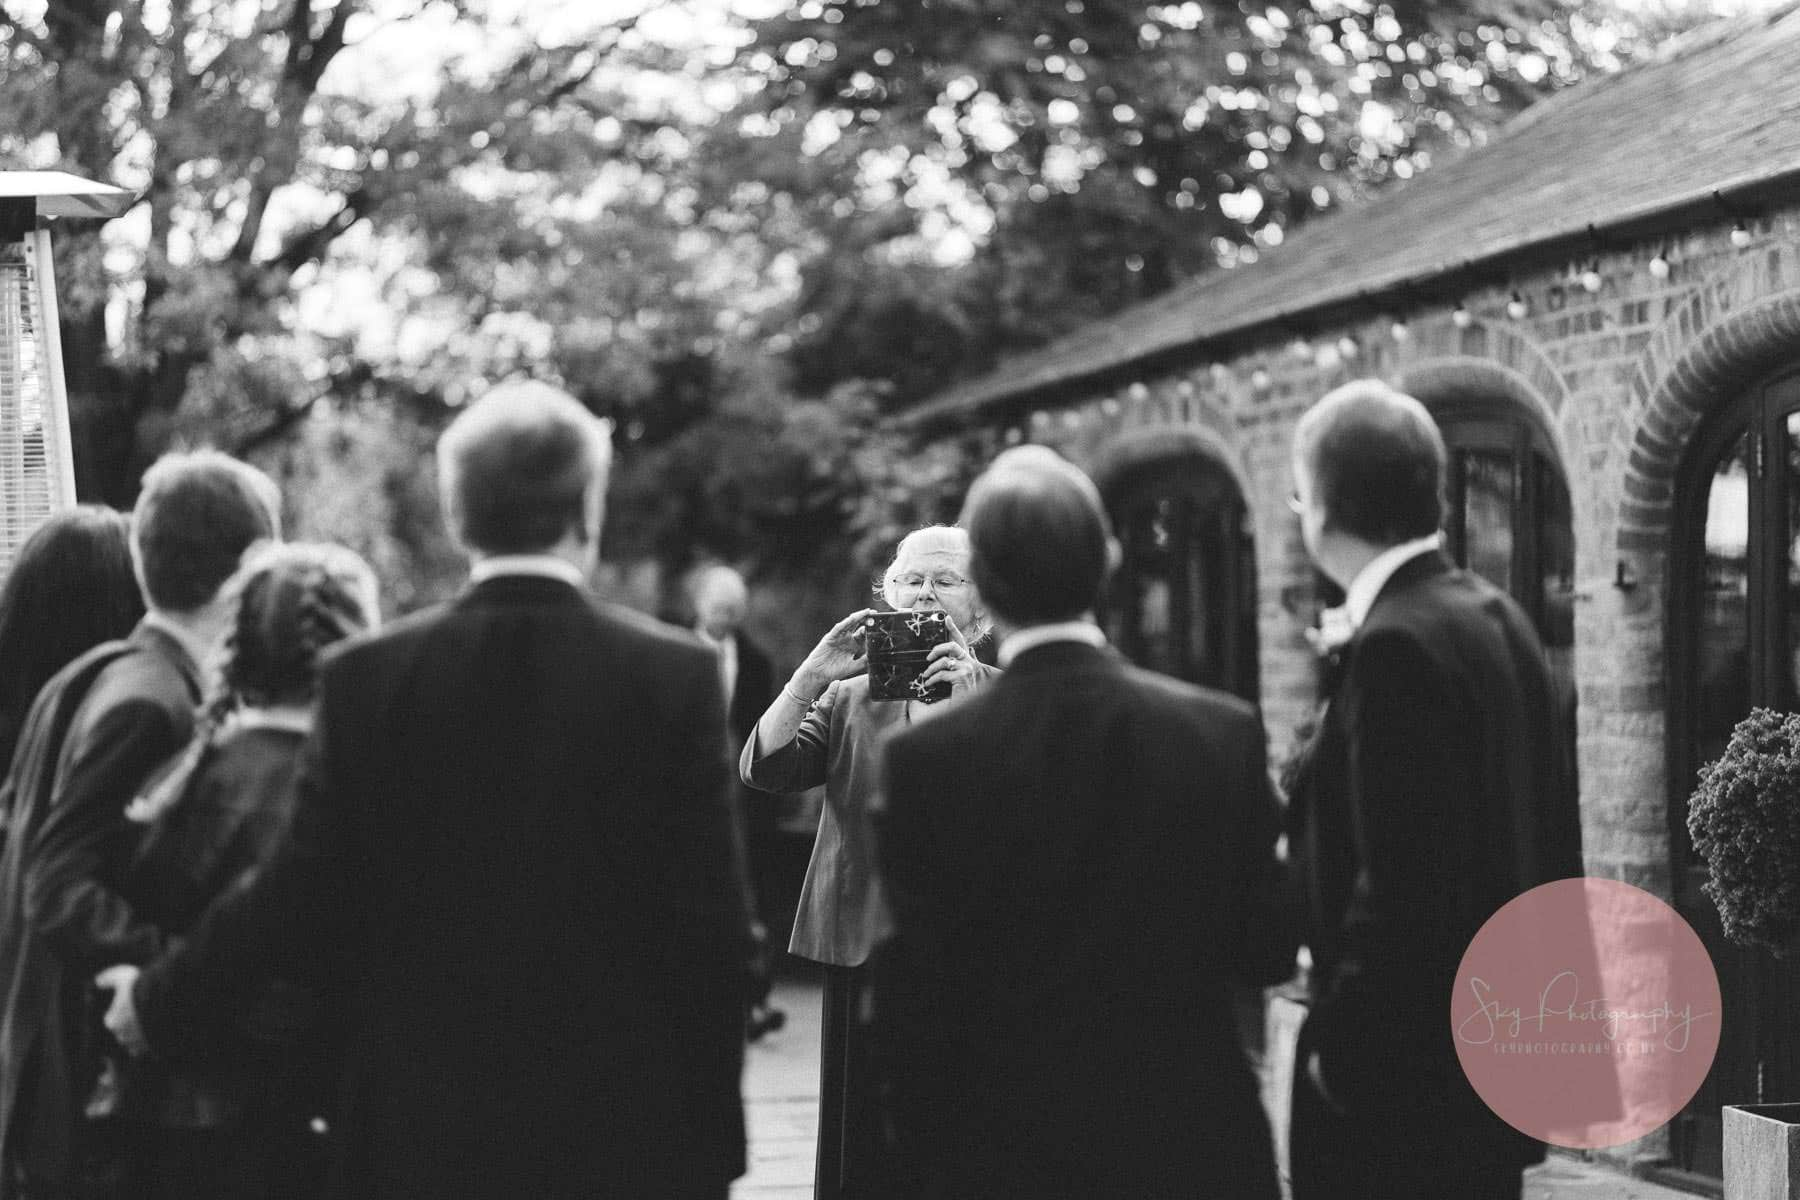 grndma taking a photo of wedding guests